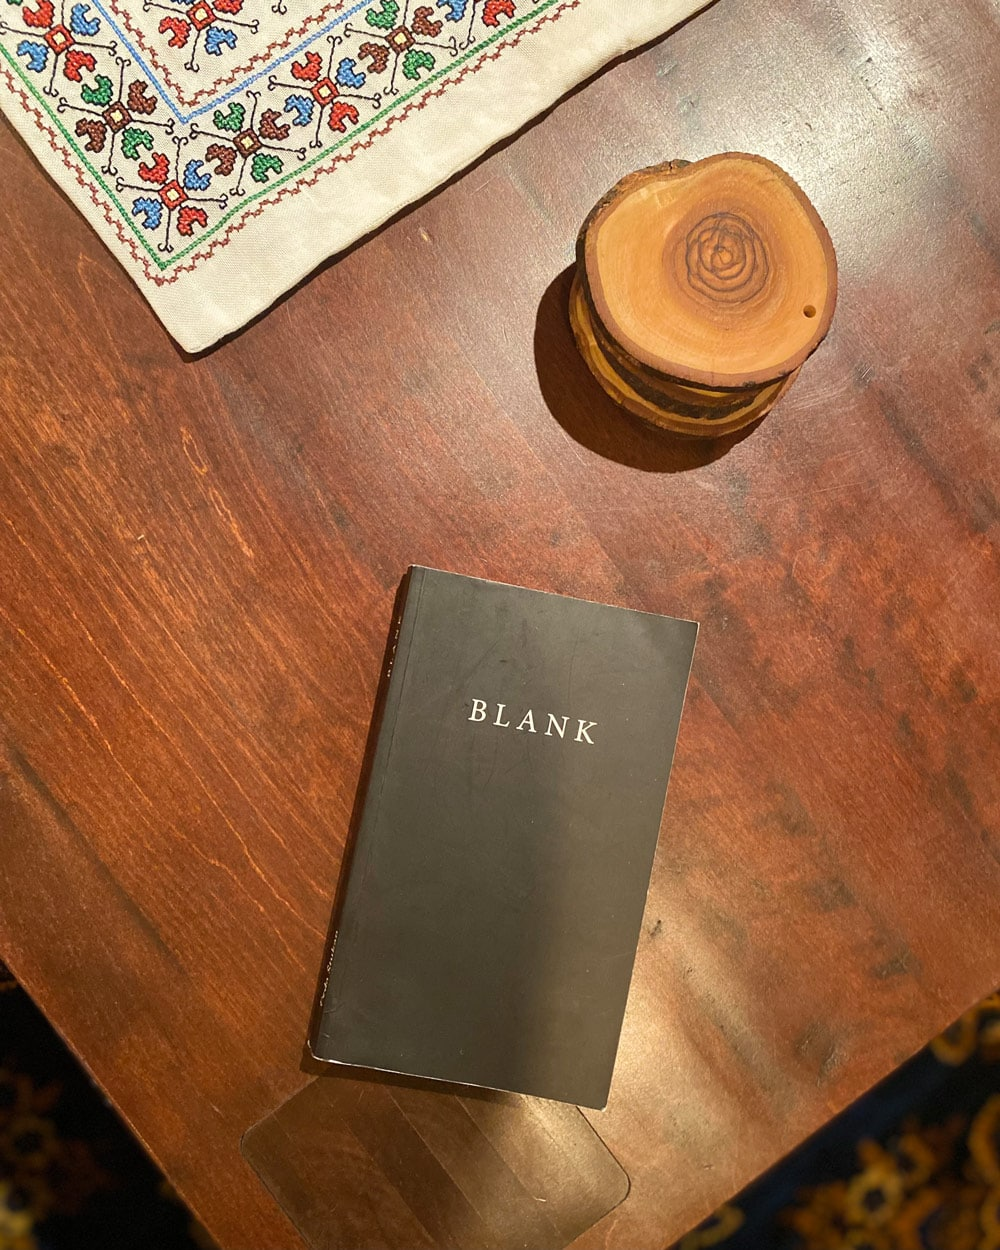 Blank-by-Feda-Stukan-Fulfilled-emptiness-review-presentation